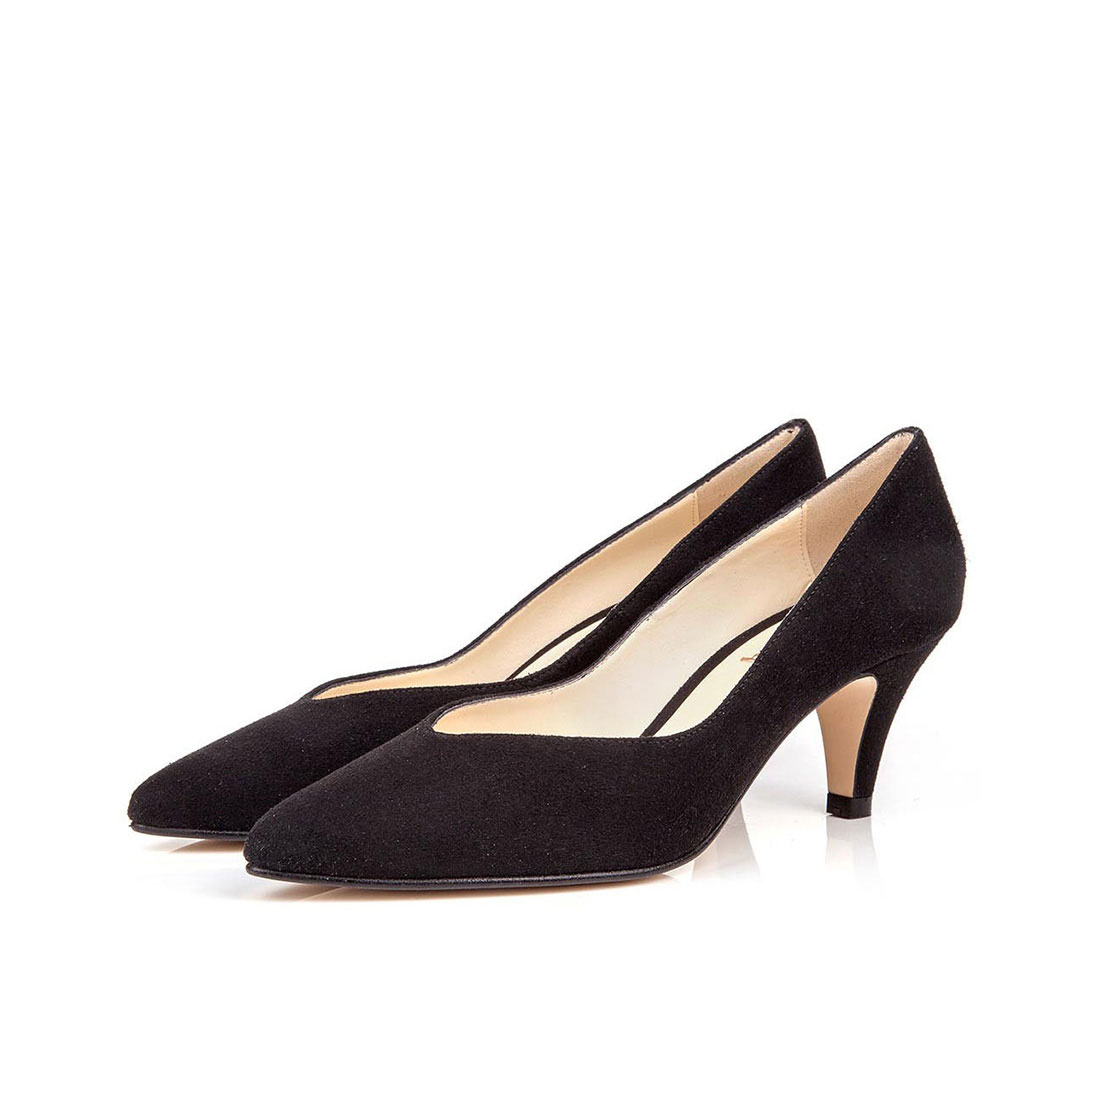 Suede leather elegant style pointed toe 4cm high heels women pump shoes YB2055